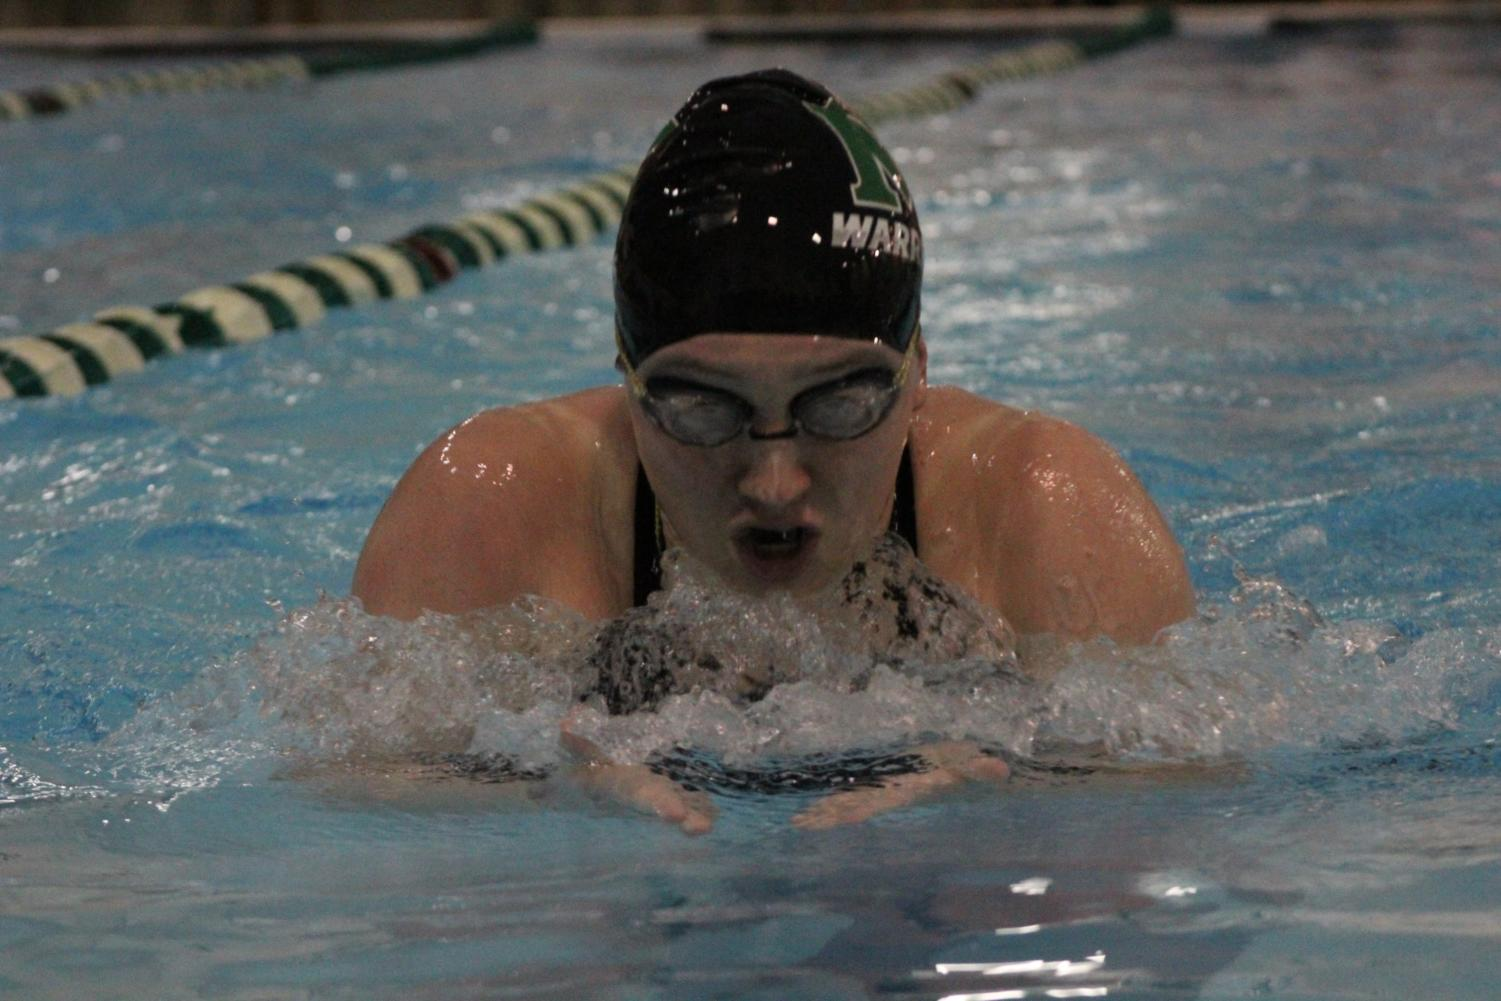 Senior Erin Valle is competed in the 100 breast stroke during her last high school meet at MHS.